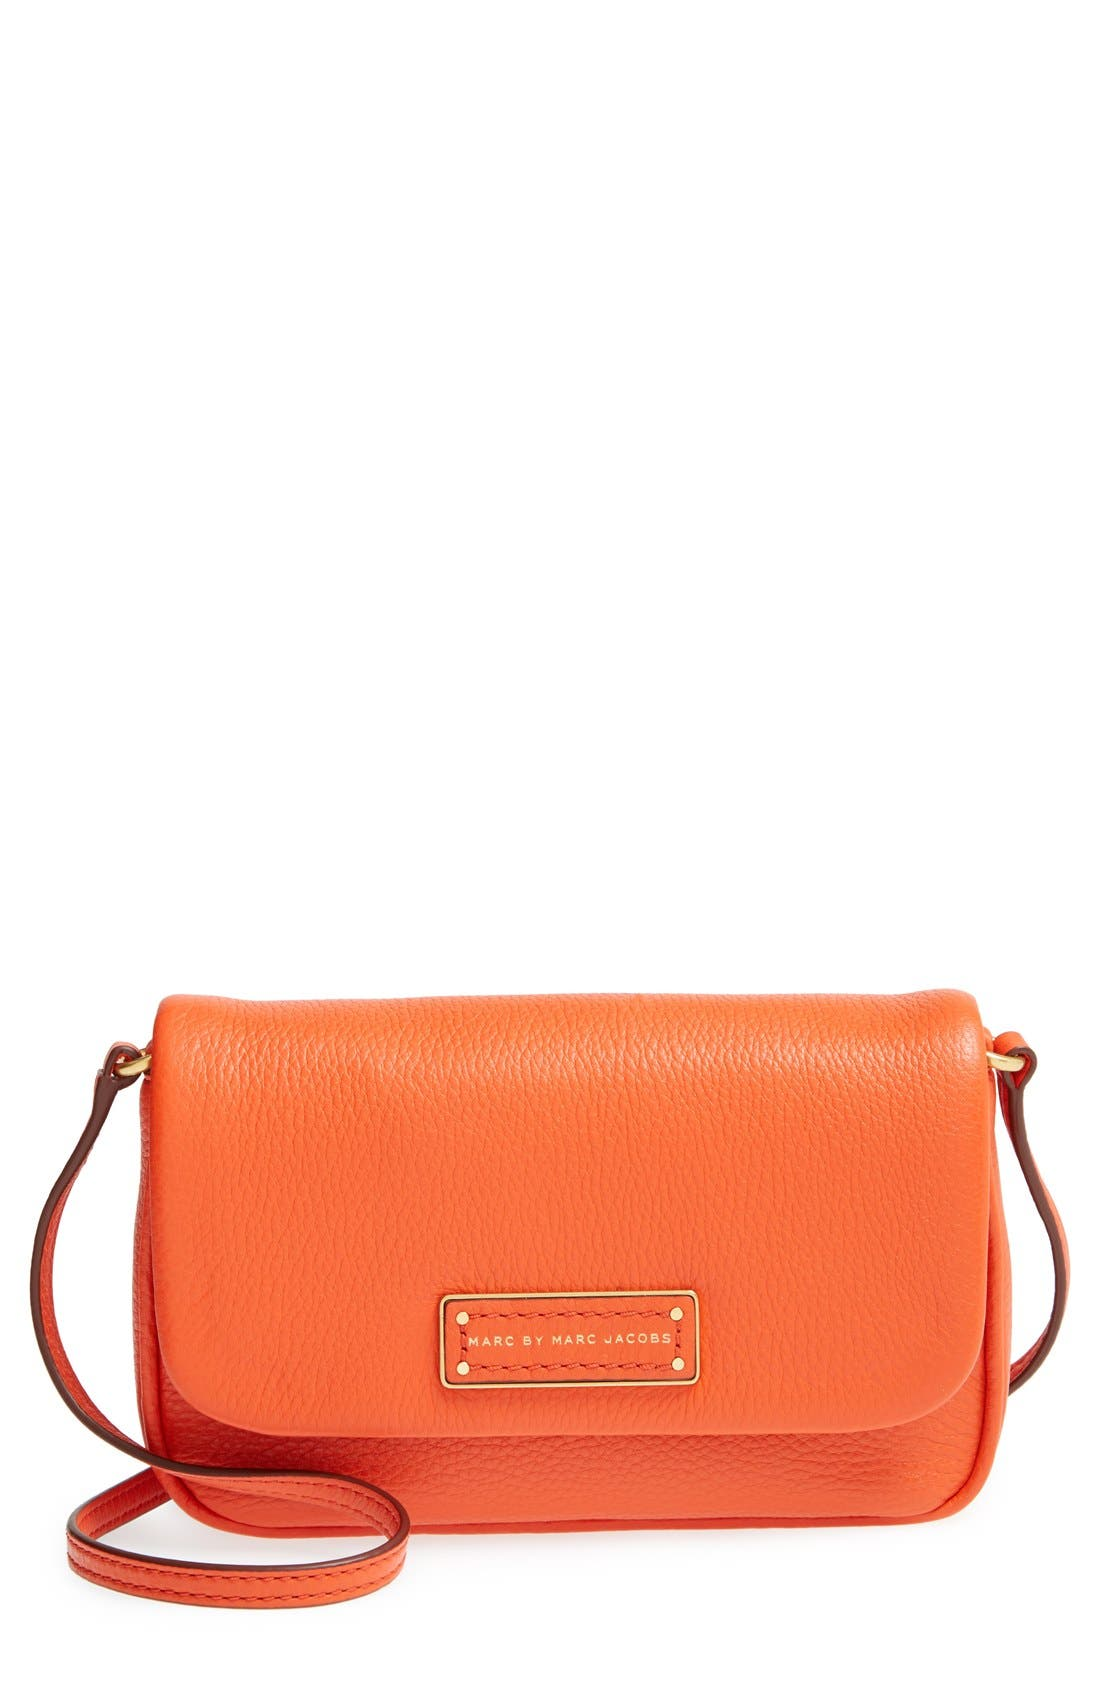 Alternate Image 1 Selected - MARC BY MARC JACOBS 'Too Hot to Handle - Sofia' Crossbody Bag